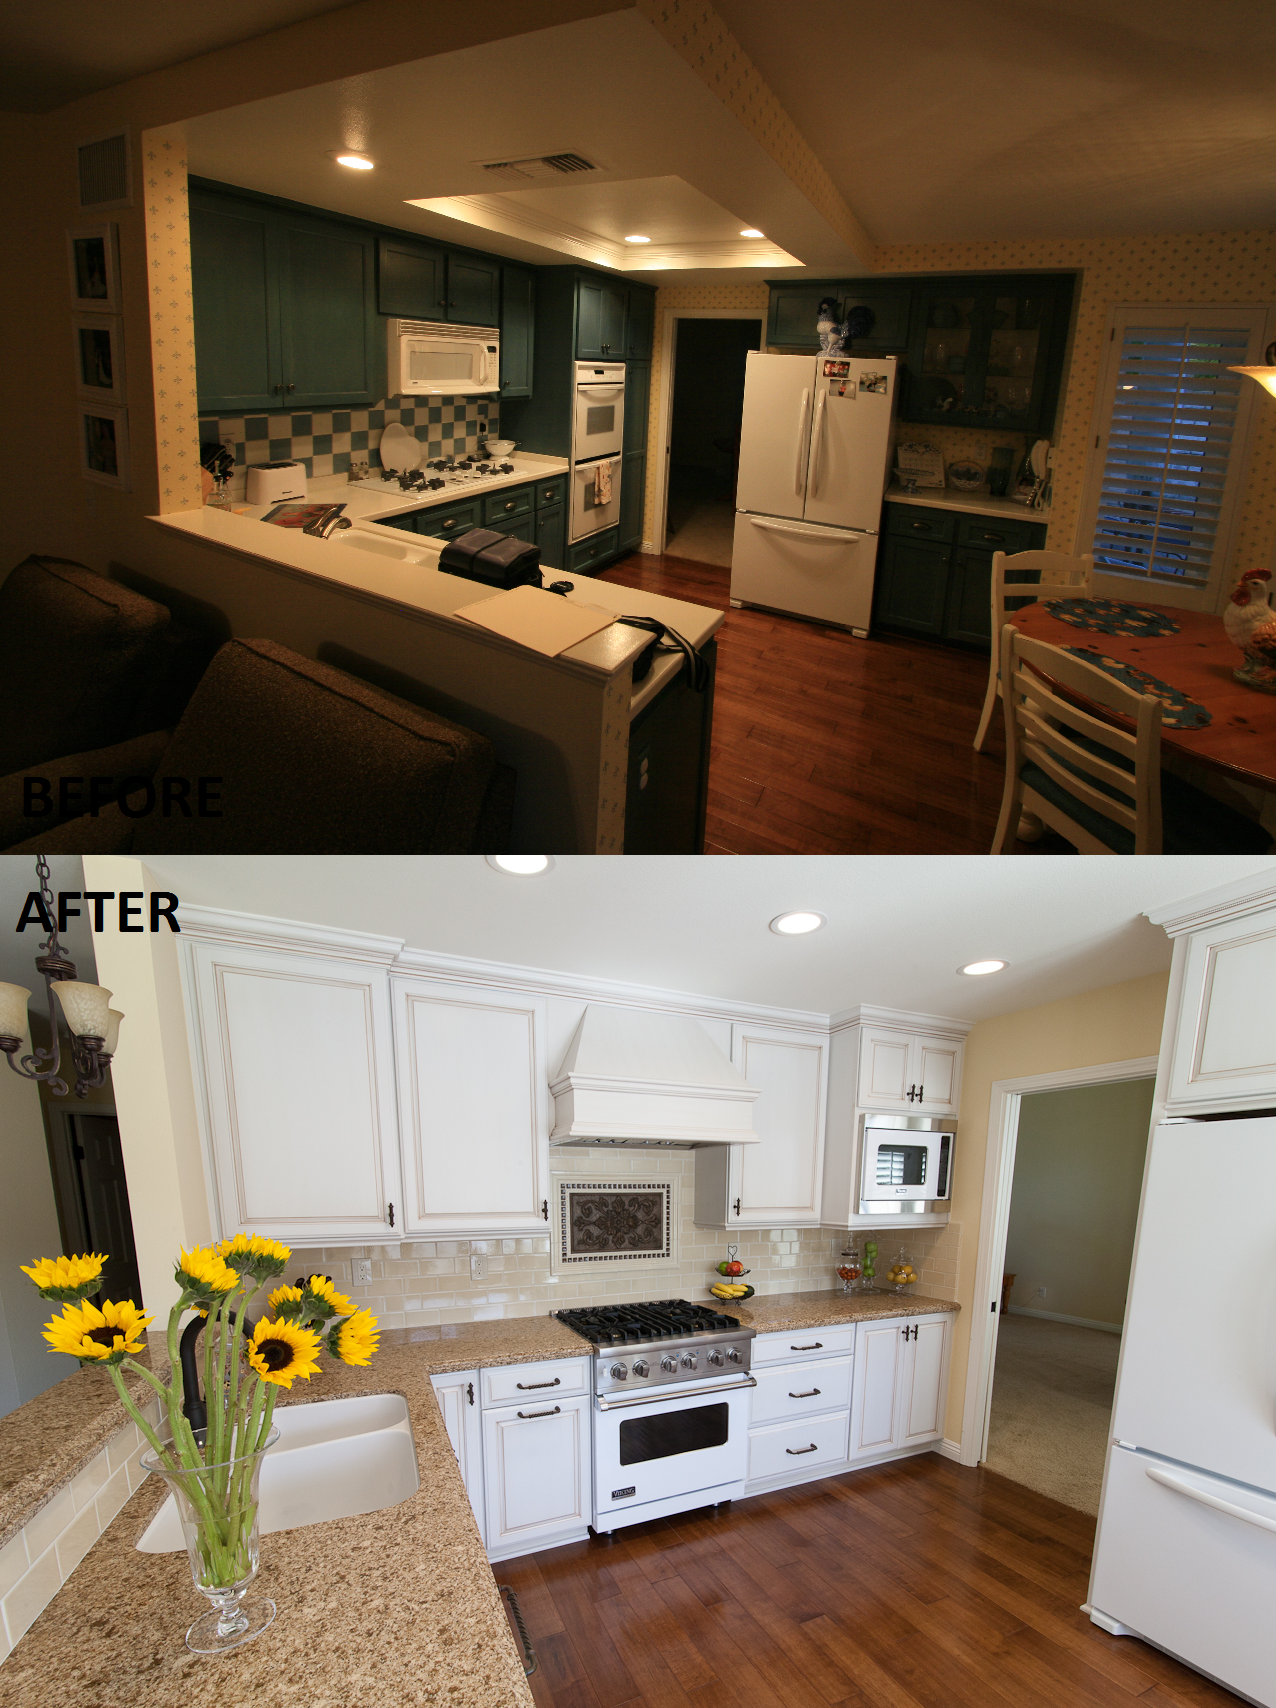 Kitchen Remodel by Kitchens Etc of Ventura County Cabinetry is